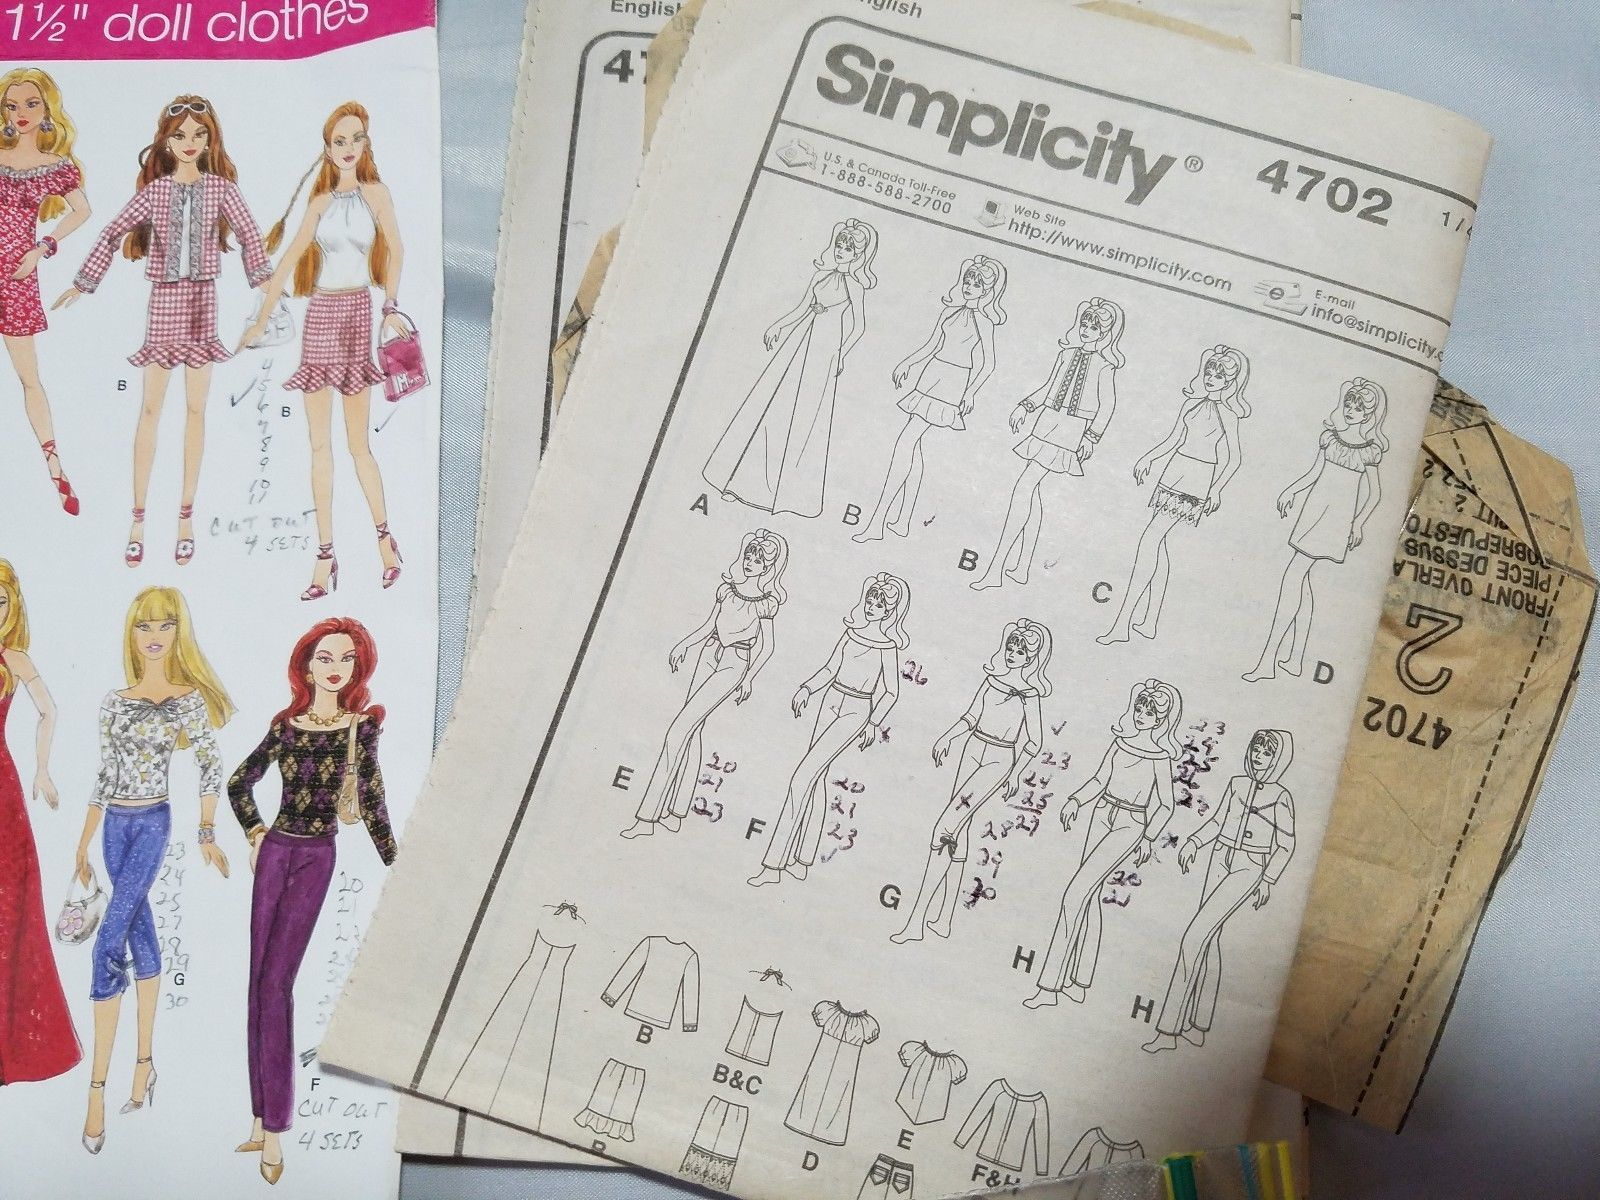 Simplicity Barbie Doll Clothing Pattern Vintage 4702 w/Pre-Cut Fabric Included